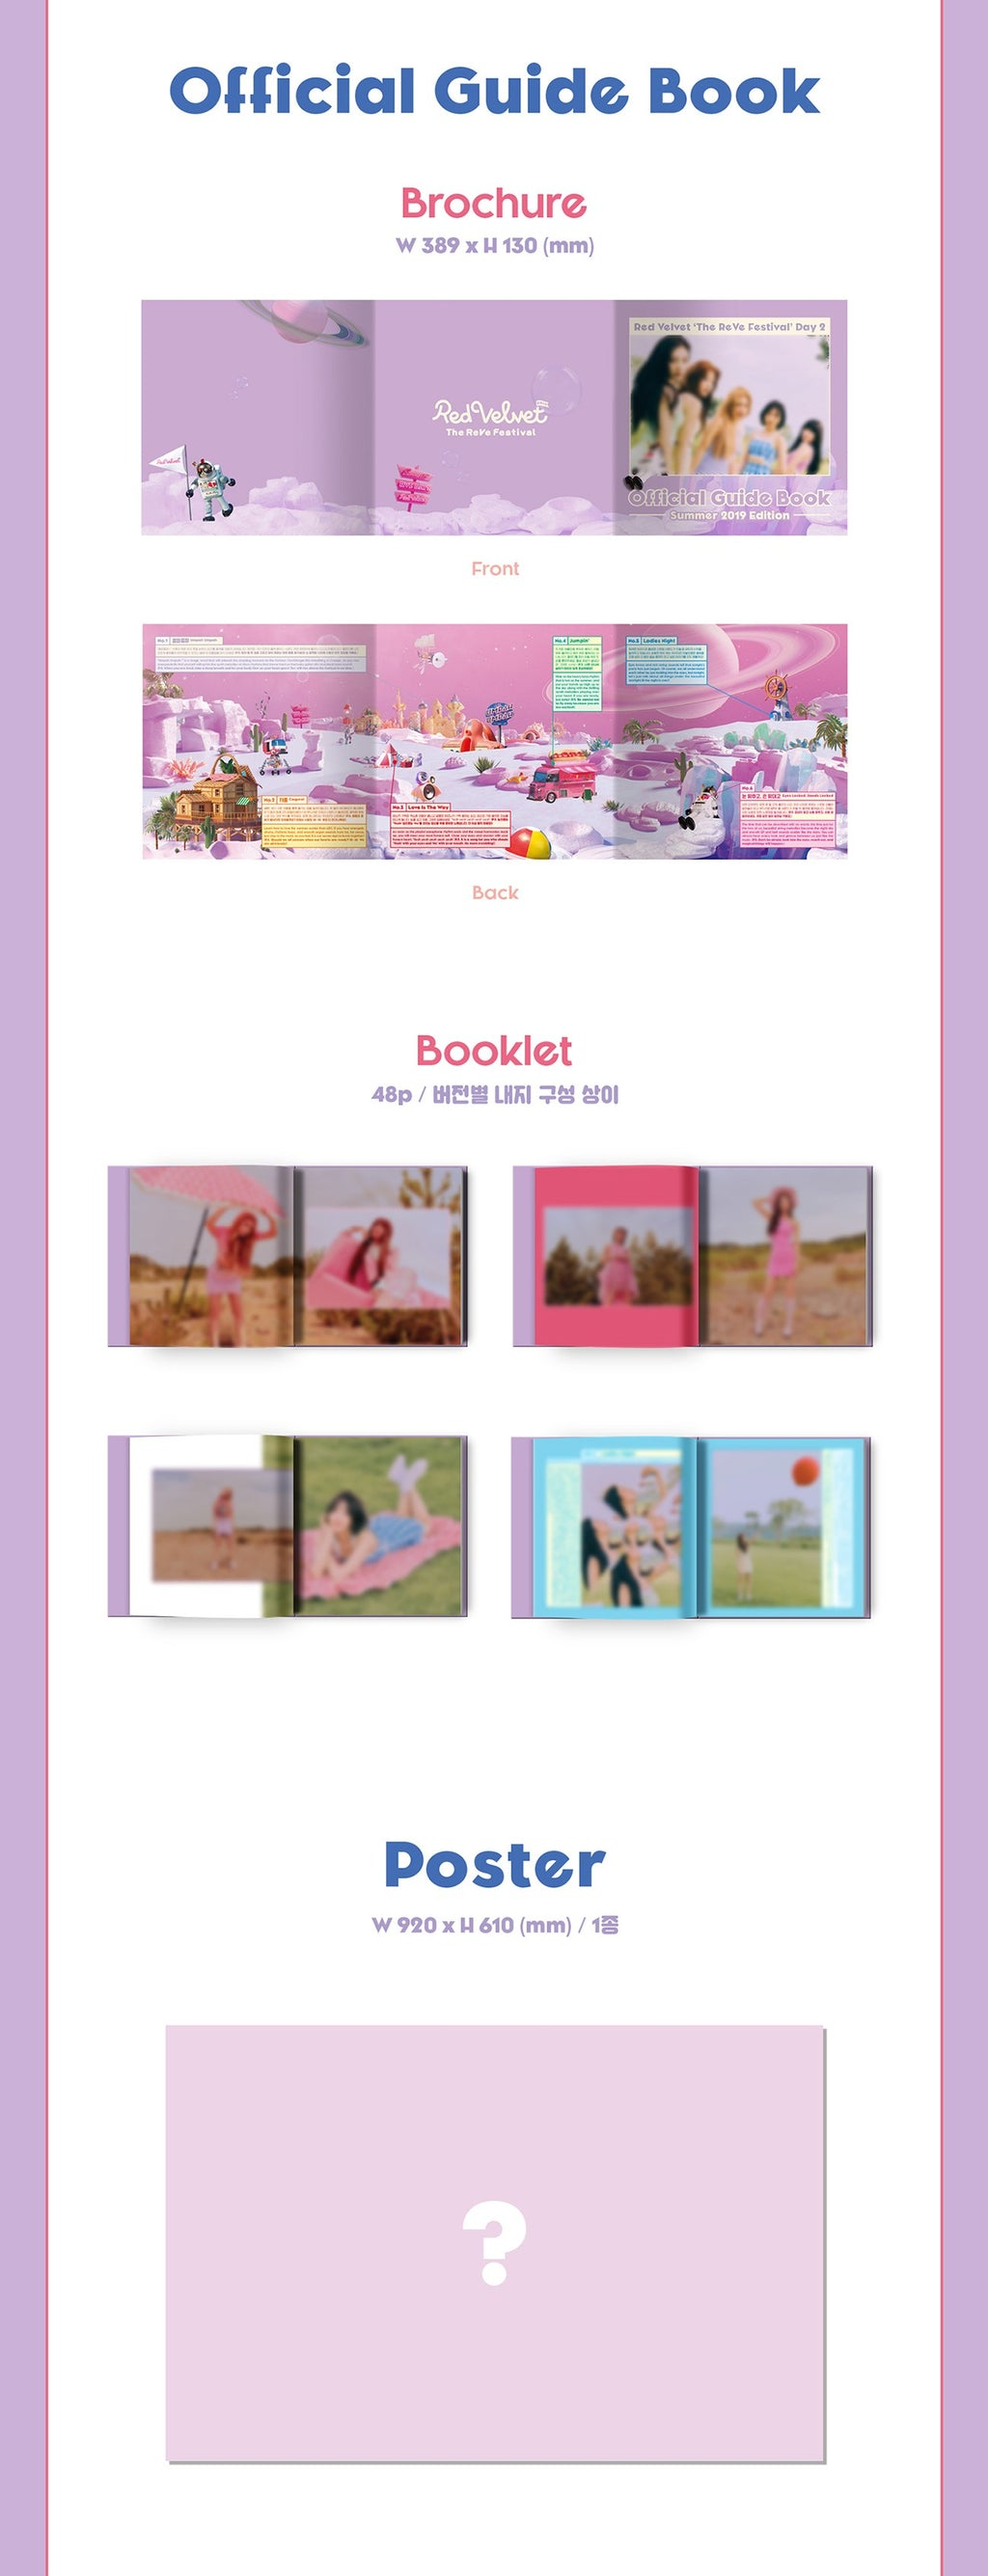 Red Velvet - The ReVe Festival Day 2 - Guide Book Version - jetzt lieferbar